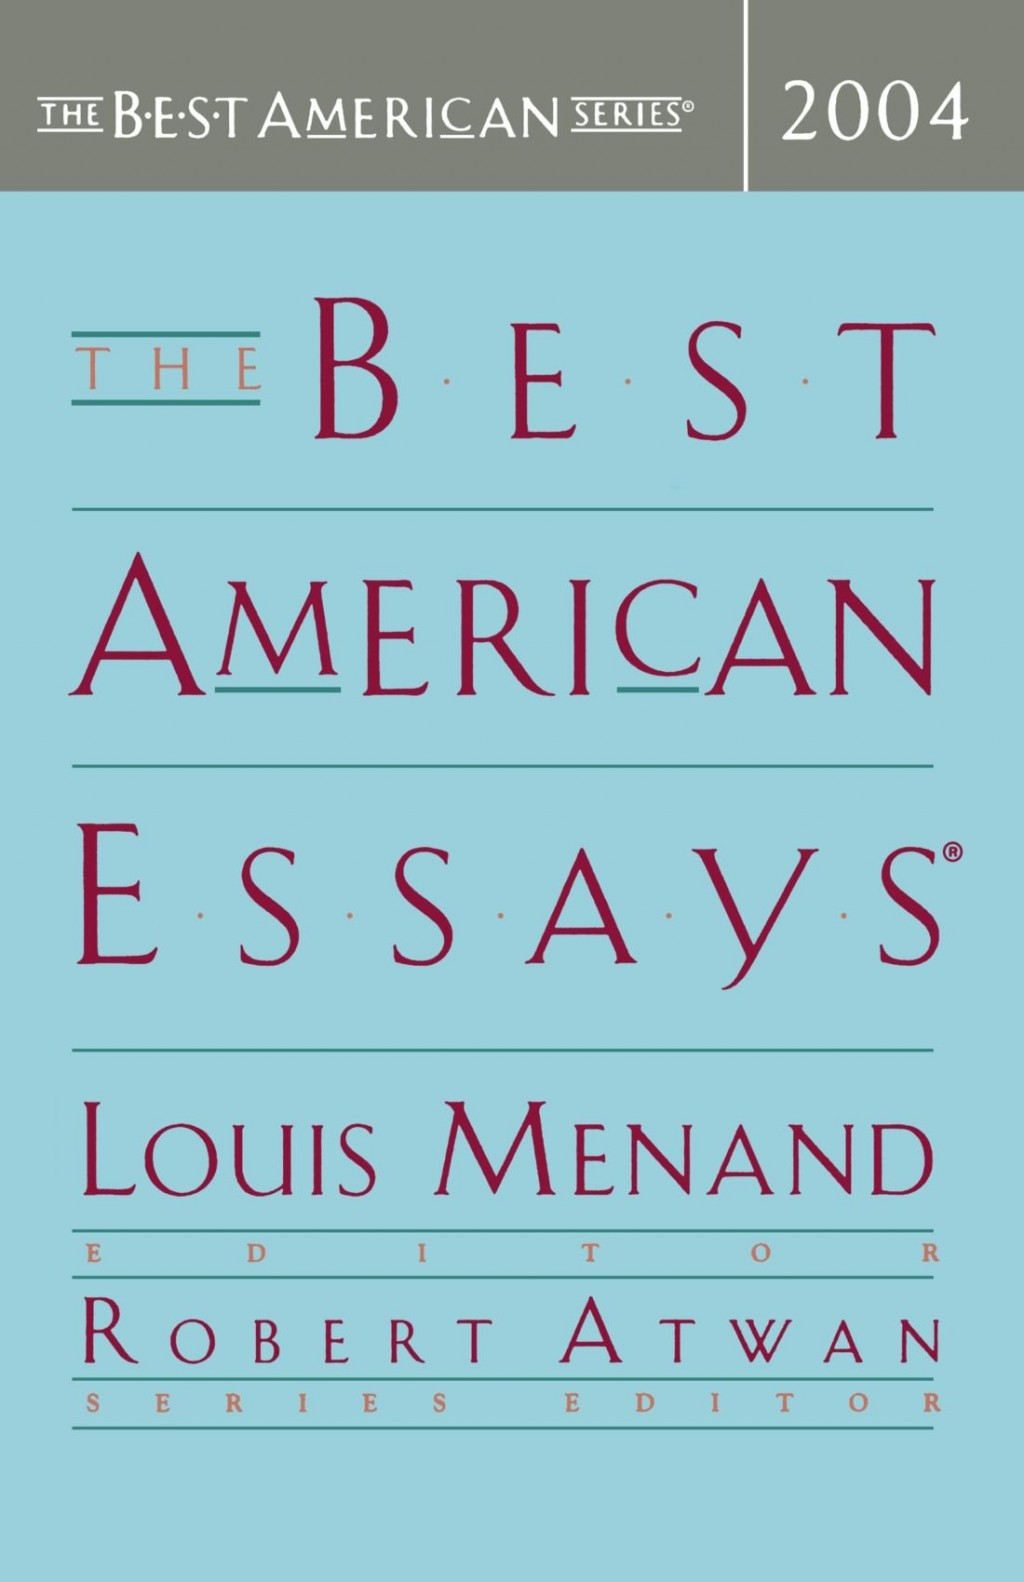 015 Essay Example The Best American Essays Wonderful Of Century Table Contents 2013 Pdf Download Large